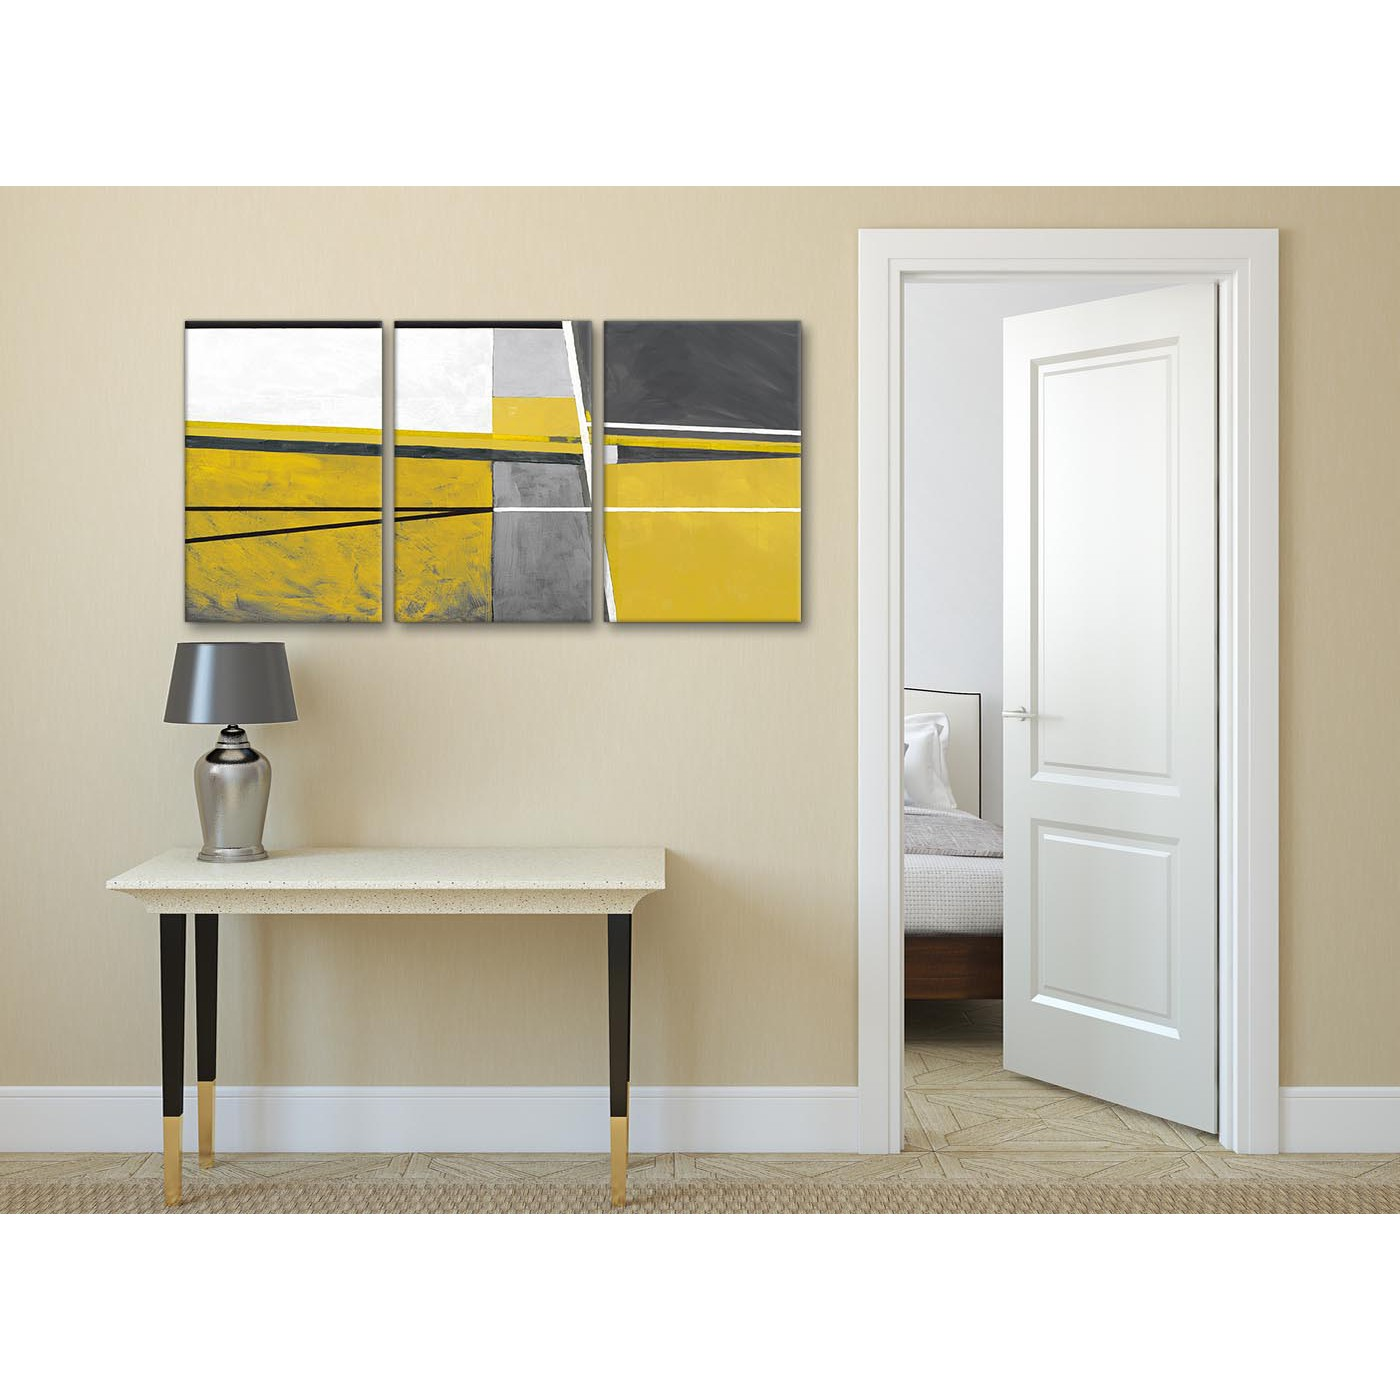 Mustard Accessories For Living Room 3 Panel Mustard Yellow Grey Painting Hallway Canvas